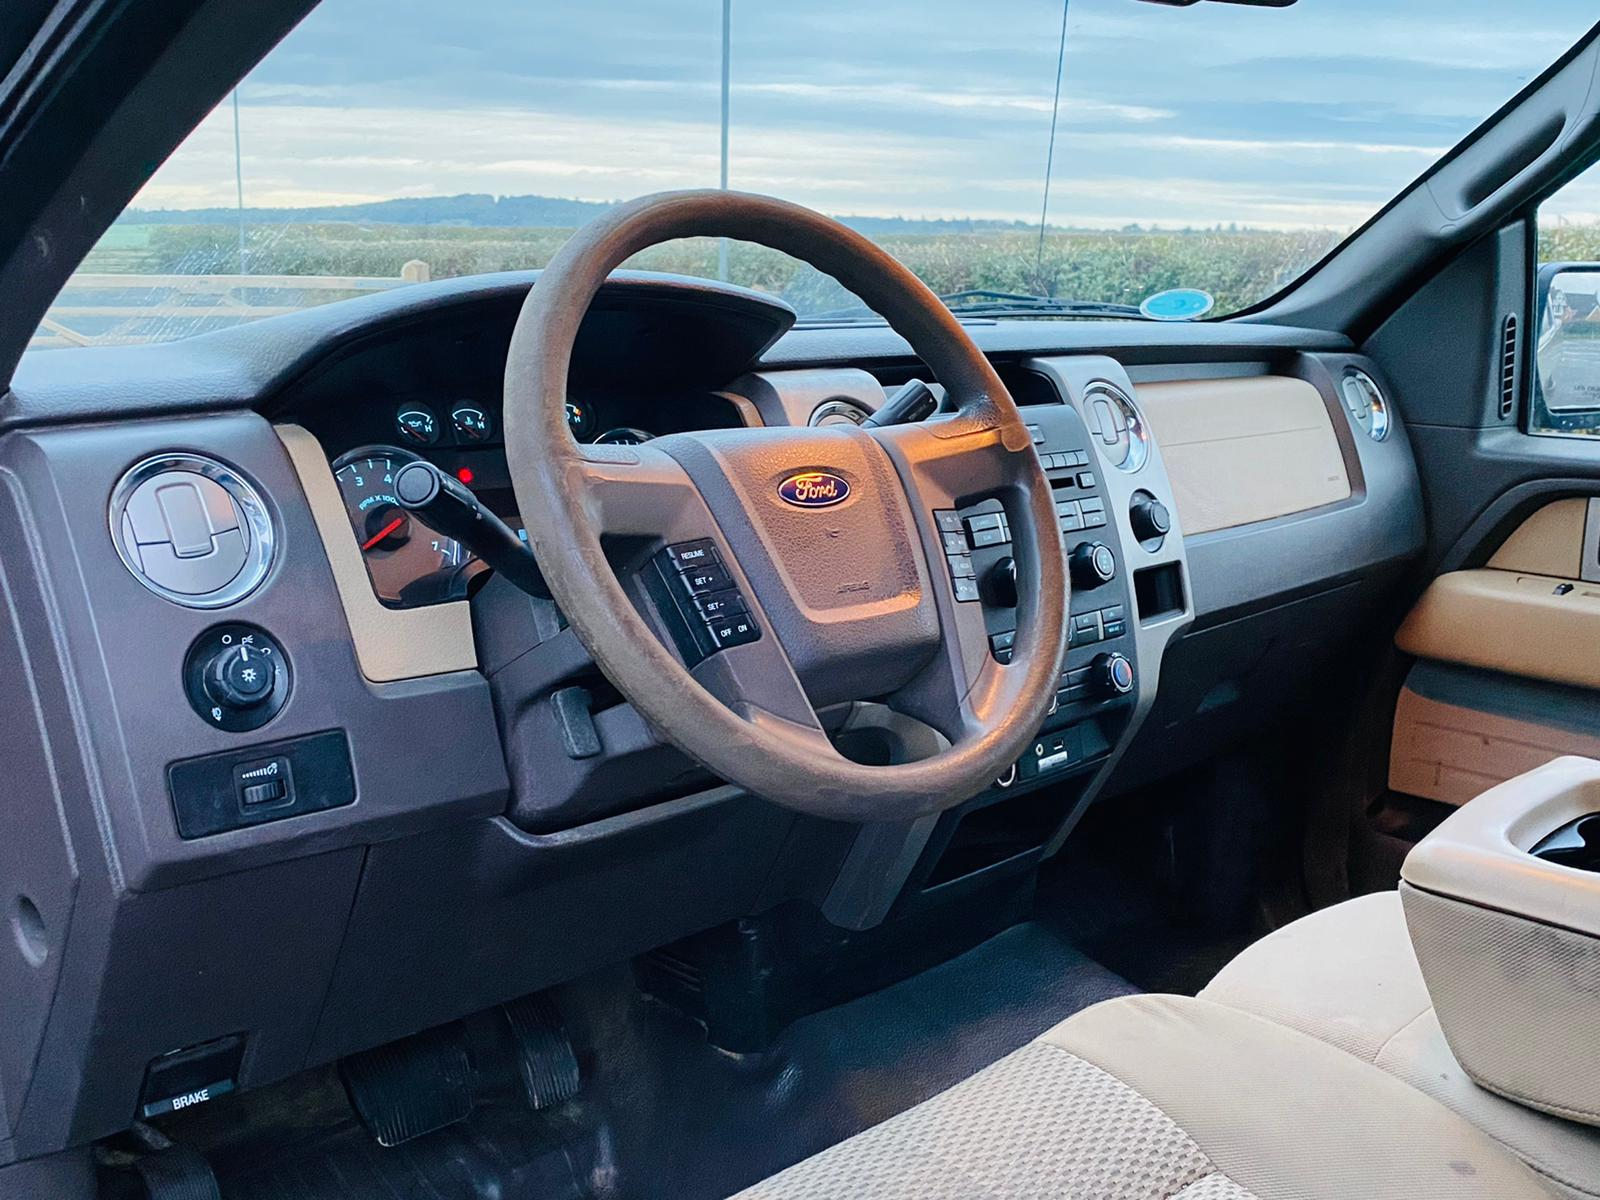 (RESERVE MET) Ford F-150 XLT 4.6L V8 Supercab - 2010 Year - 6 Seats - Fresh Imports - Image 16 of 39